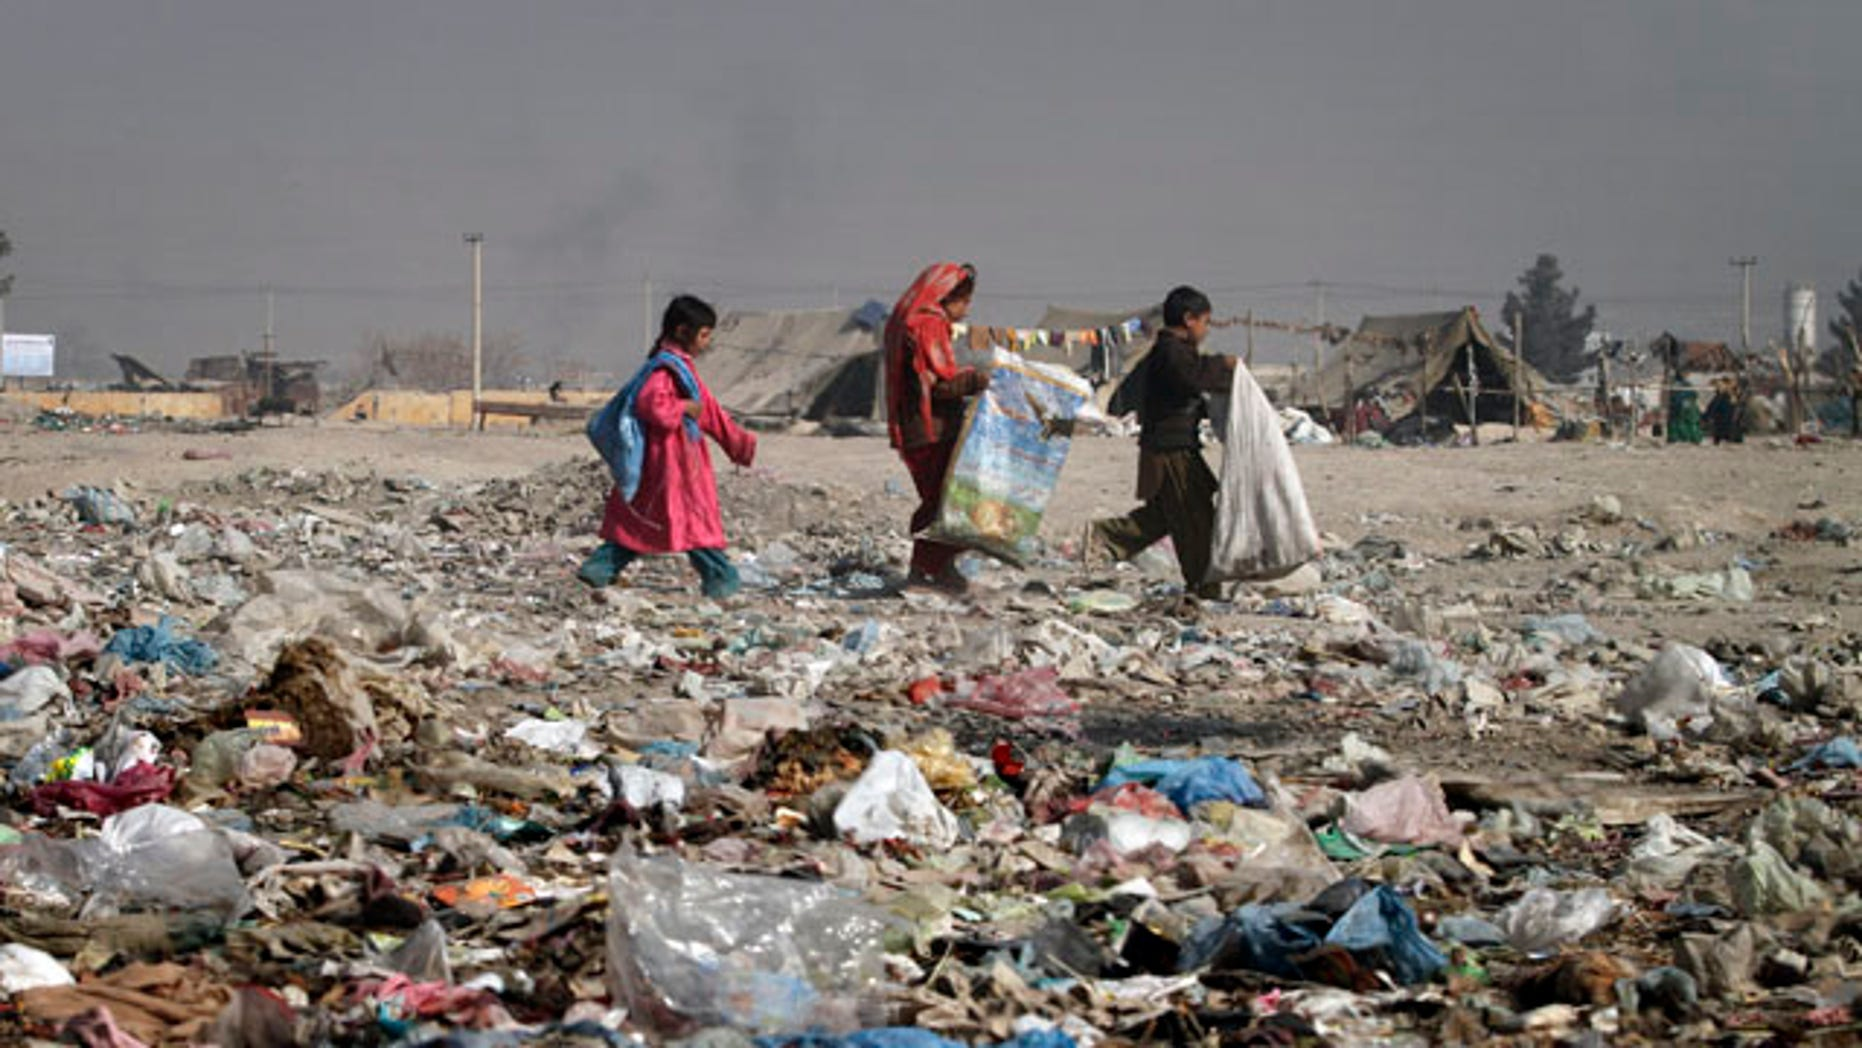 Nov. 22: Children walk on garbage to find cartons for making fire instead of firewood in Kabul, Afghanistan.